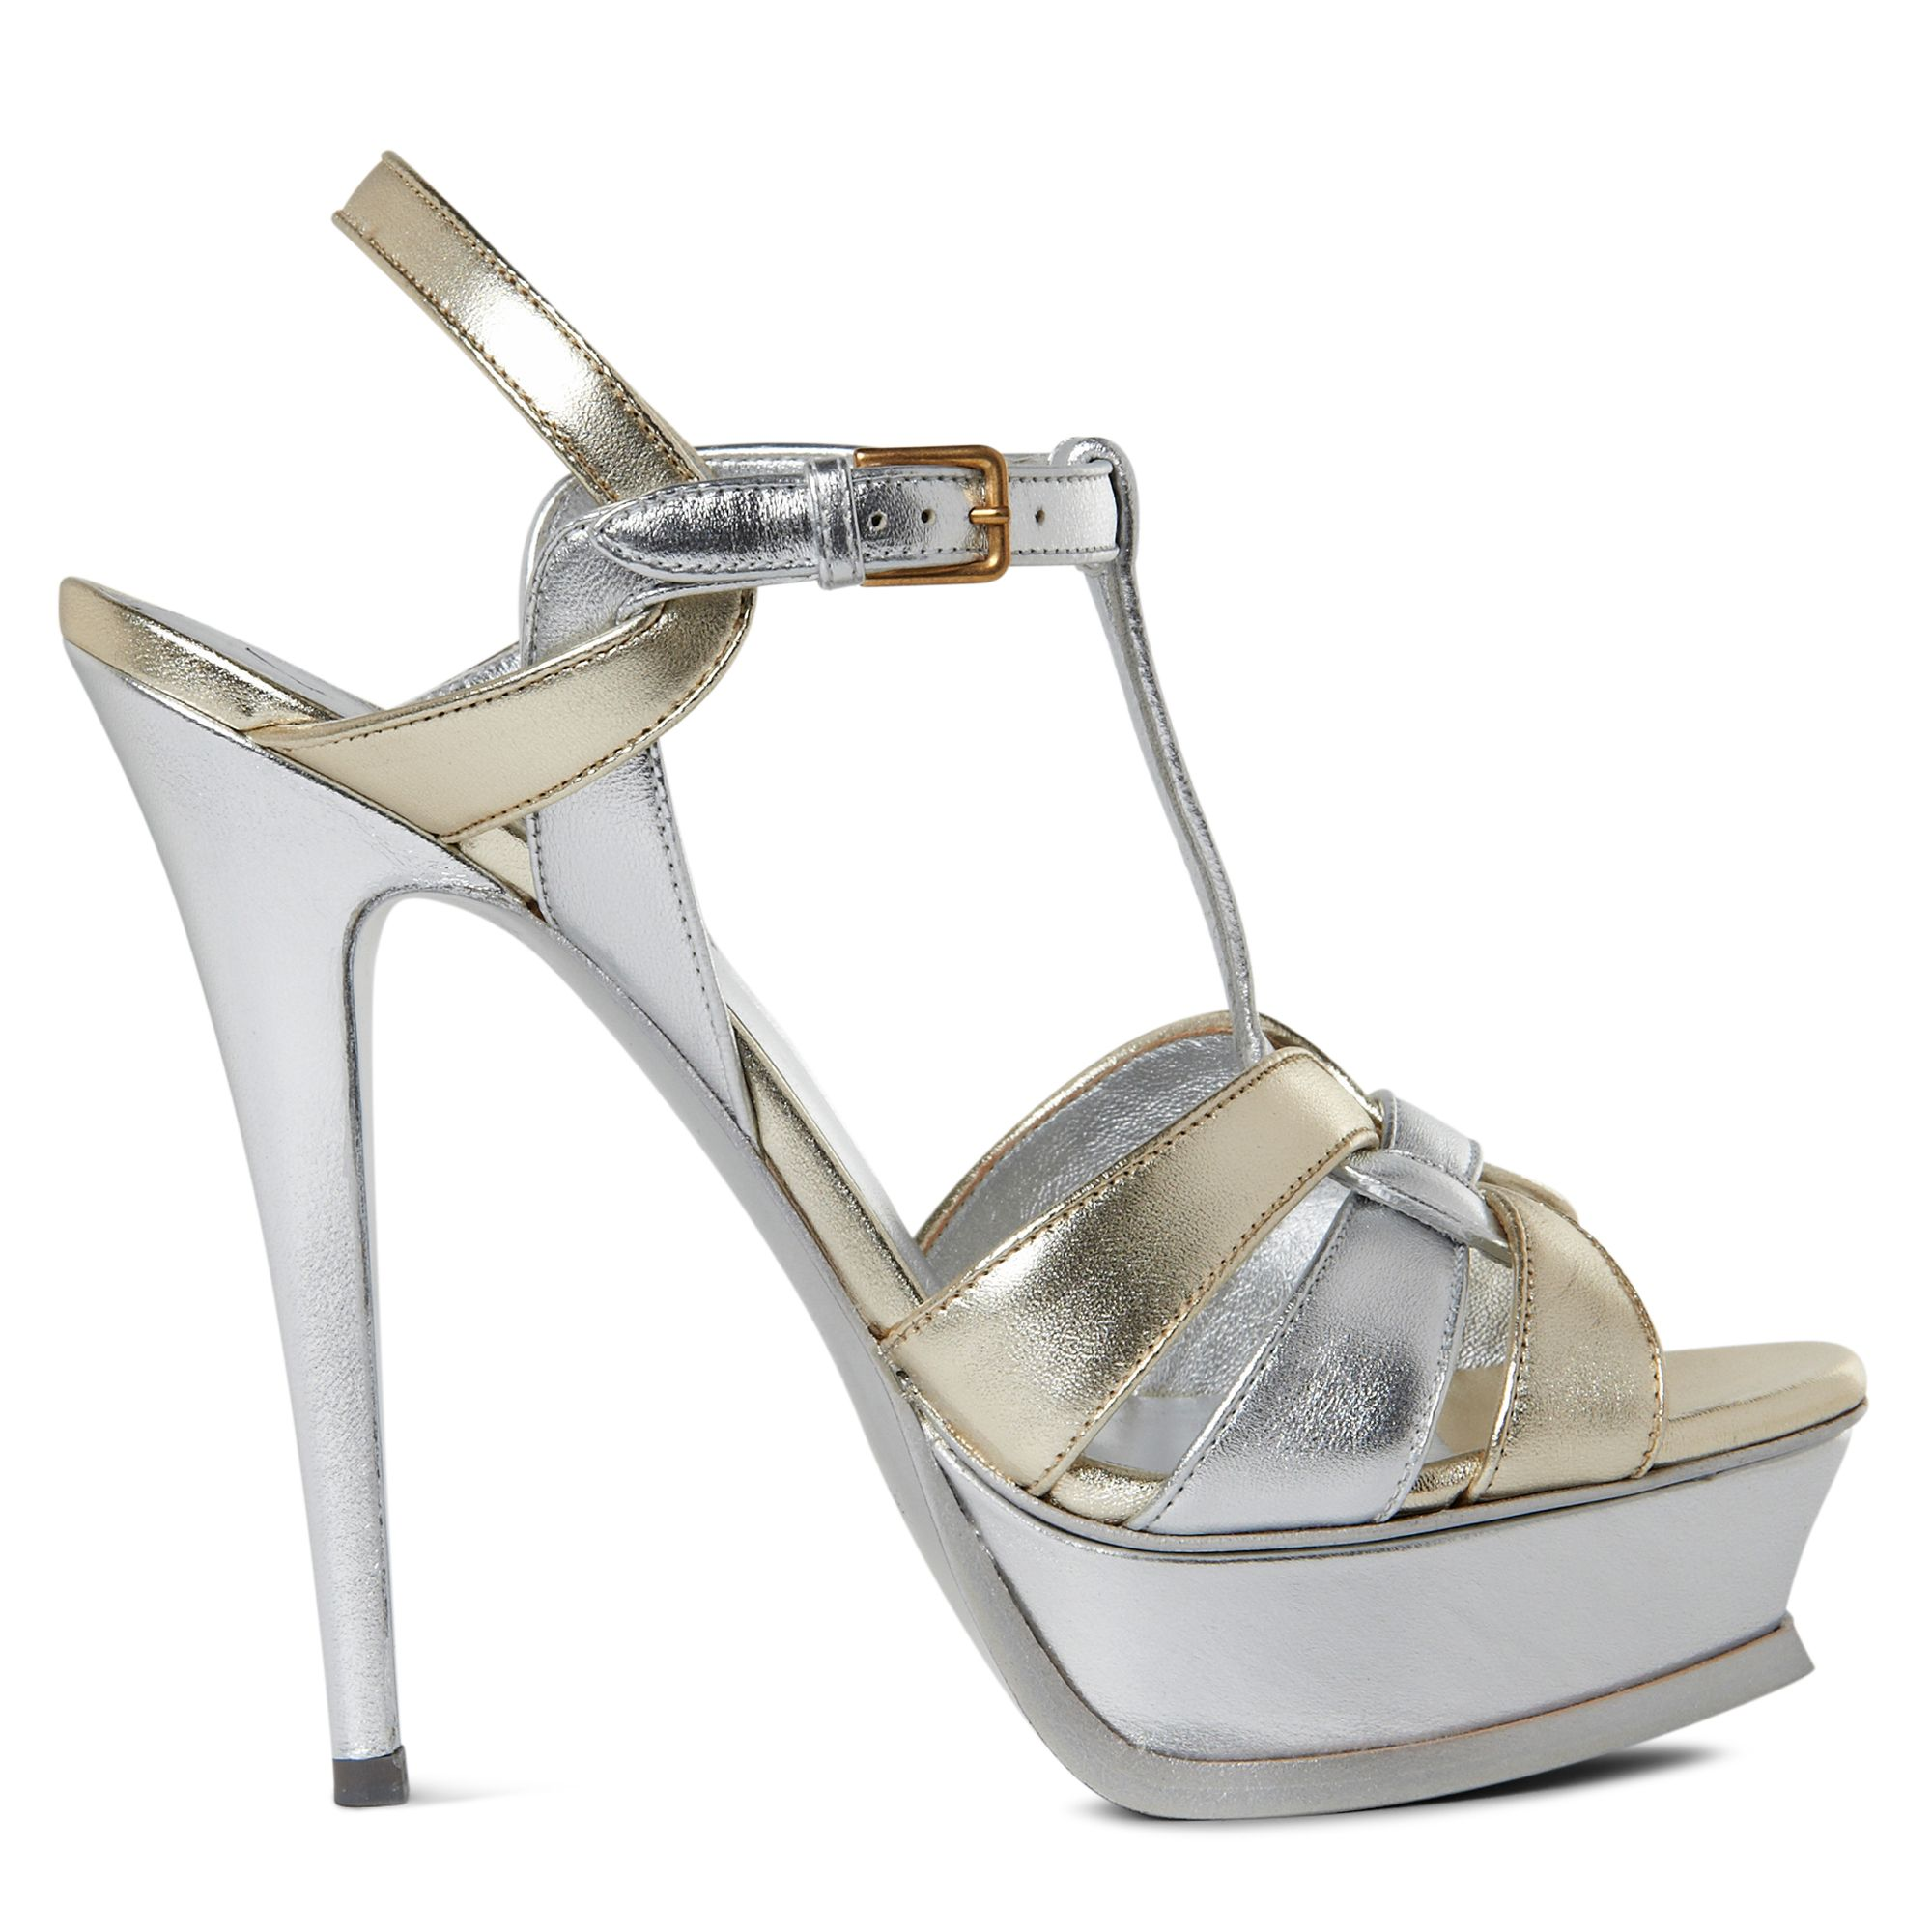 Shop hereaupy06.gq with free shipping. Discover the latest collection of Women's Pumps. Made in Italy.